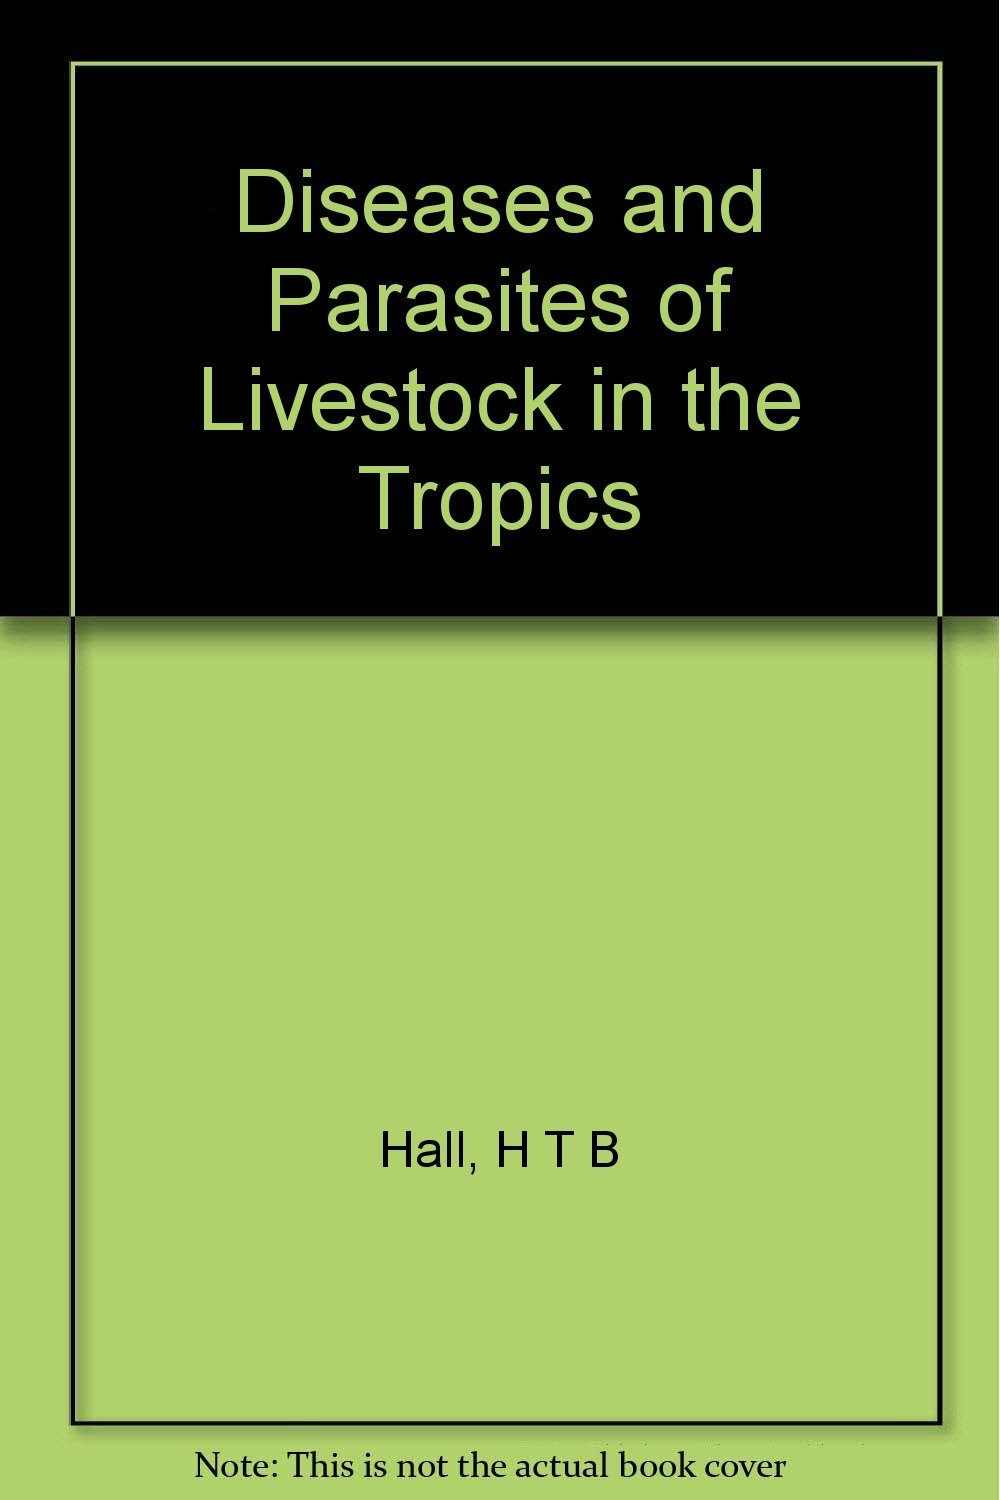 Diseases and Parasites of Livestock in the Tropics